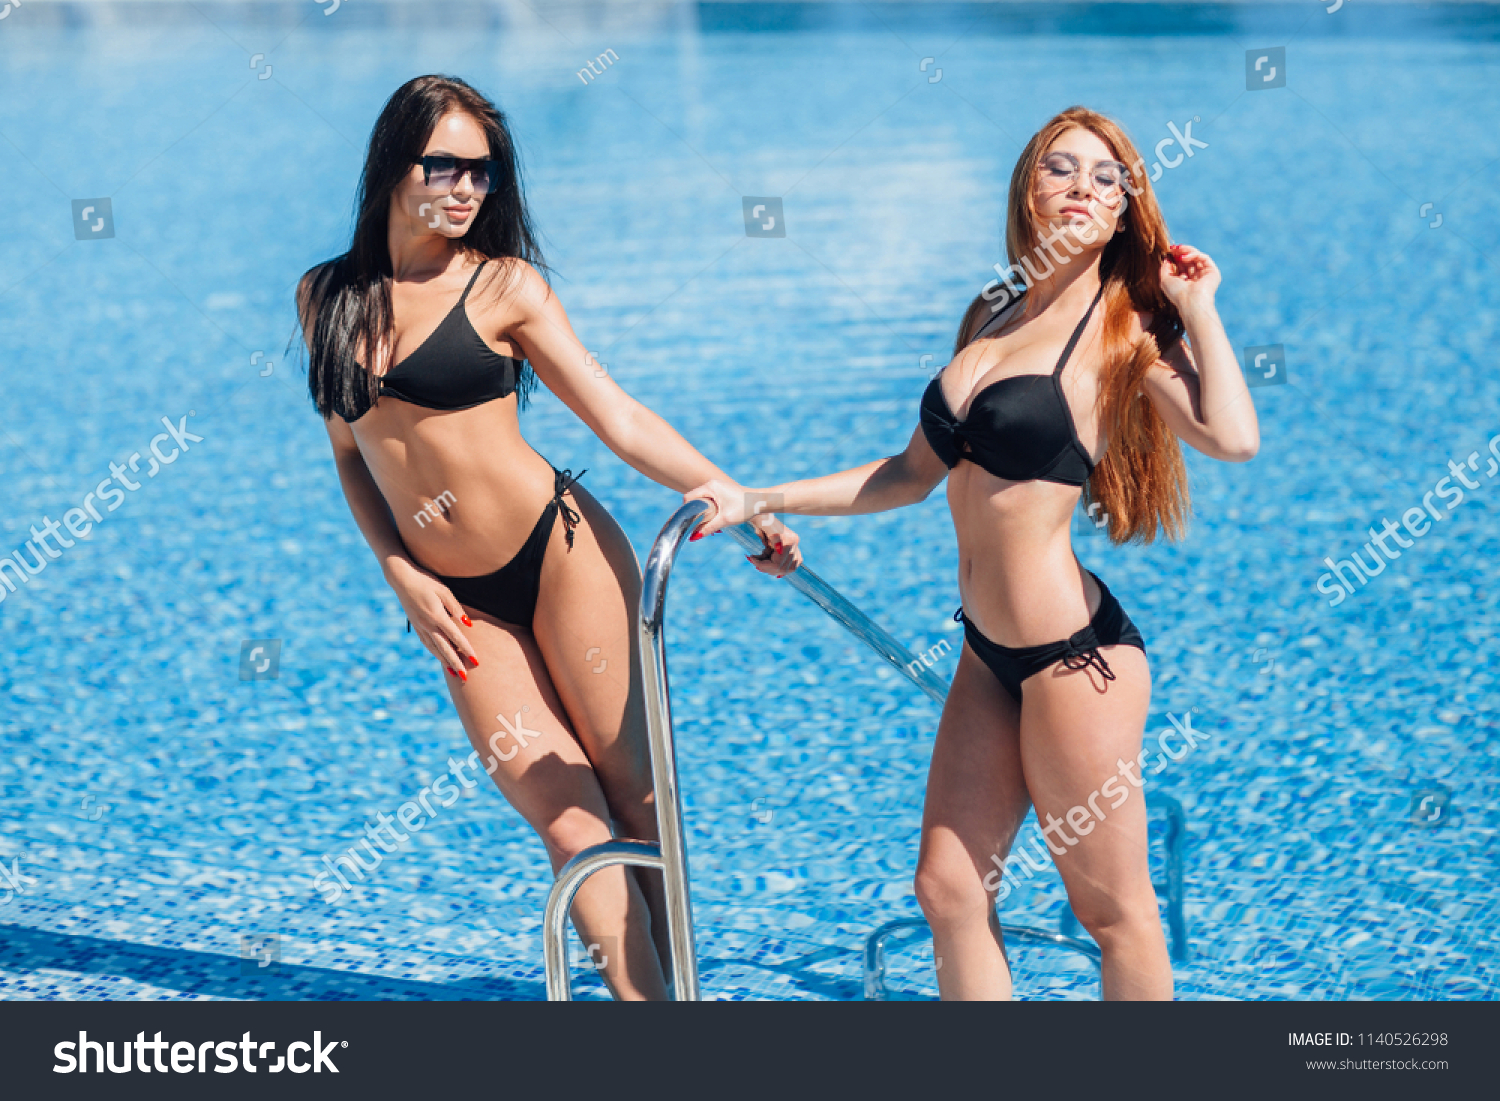 Two hot girls in black swimsuits and sunglasses posing and sunbathing at  the pool. Brunette